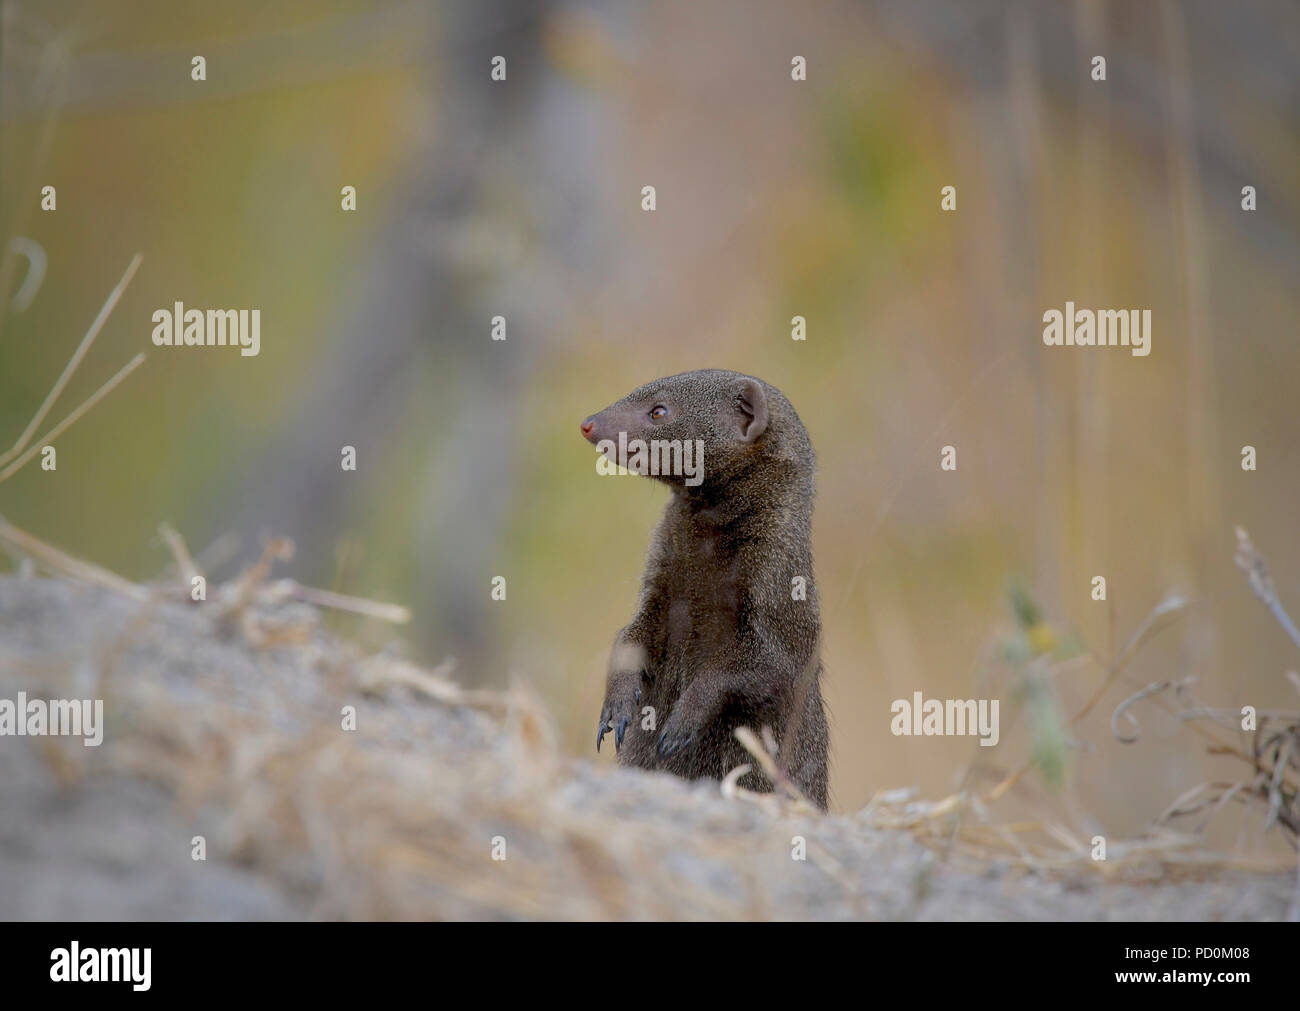 A dwarf mongoose stands alert on its hind feet, looking or enemies in Kruger National Park, South Africa - Stock Image